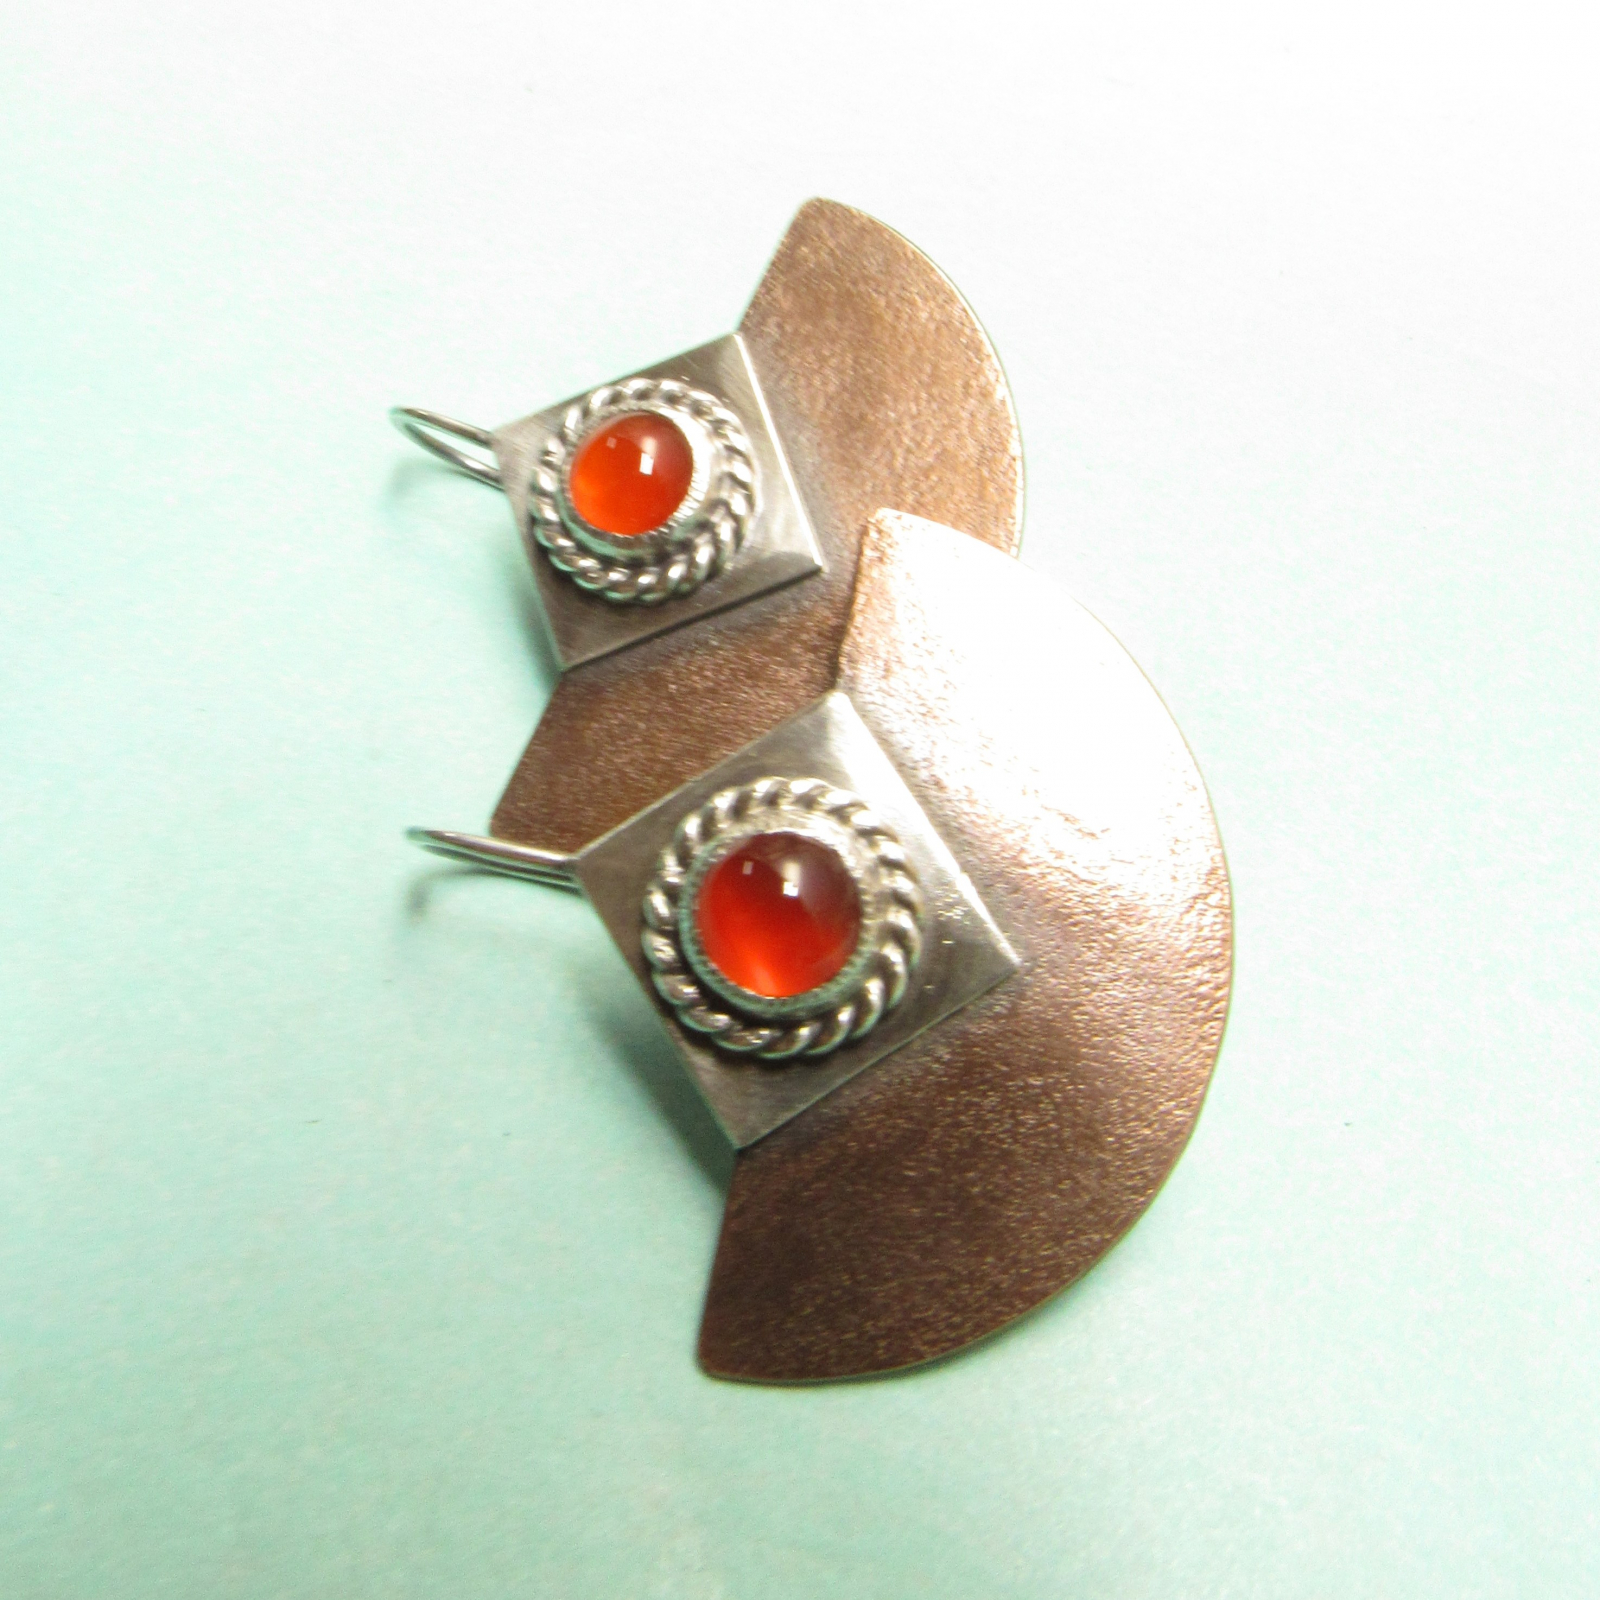 fullxfull athena metalwork collection textured fiery orange silver sterling listing earrings silversmithed artisanal carnelian il